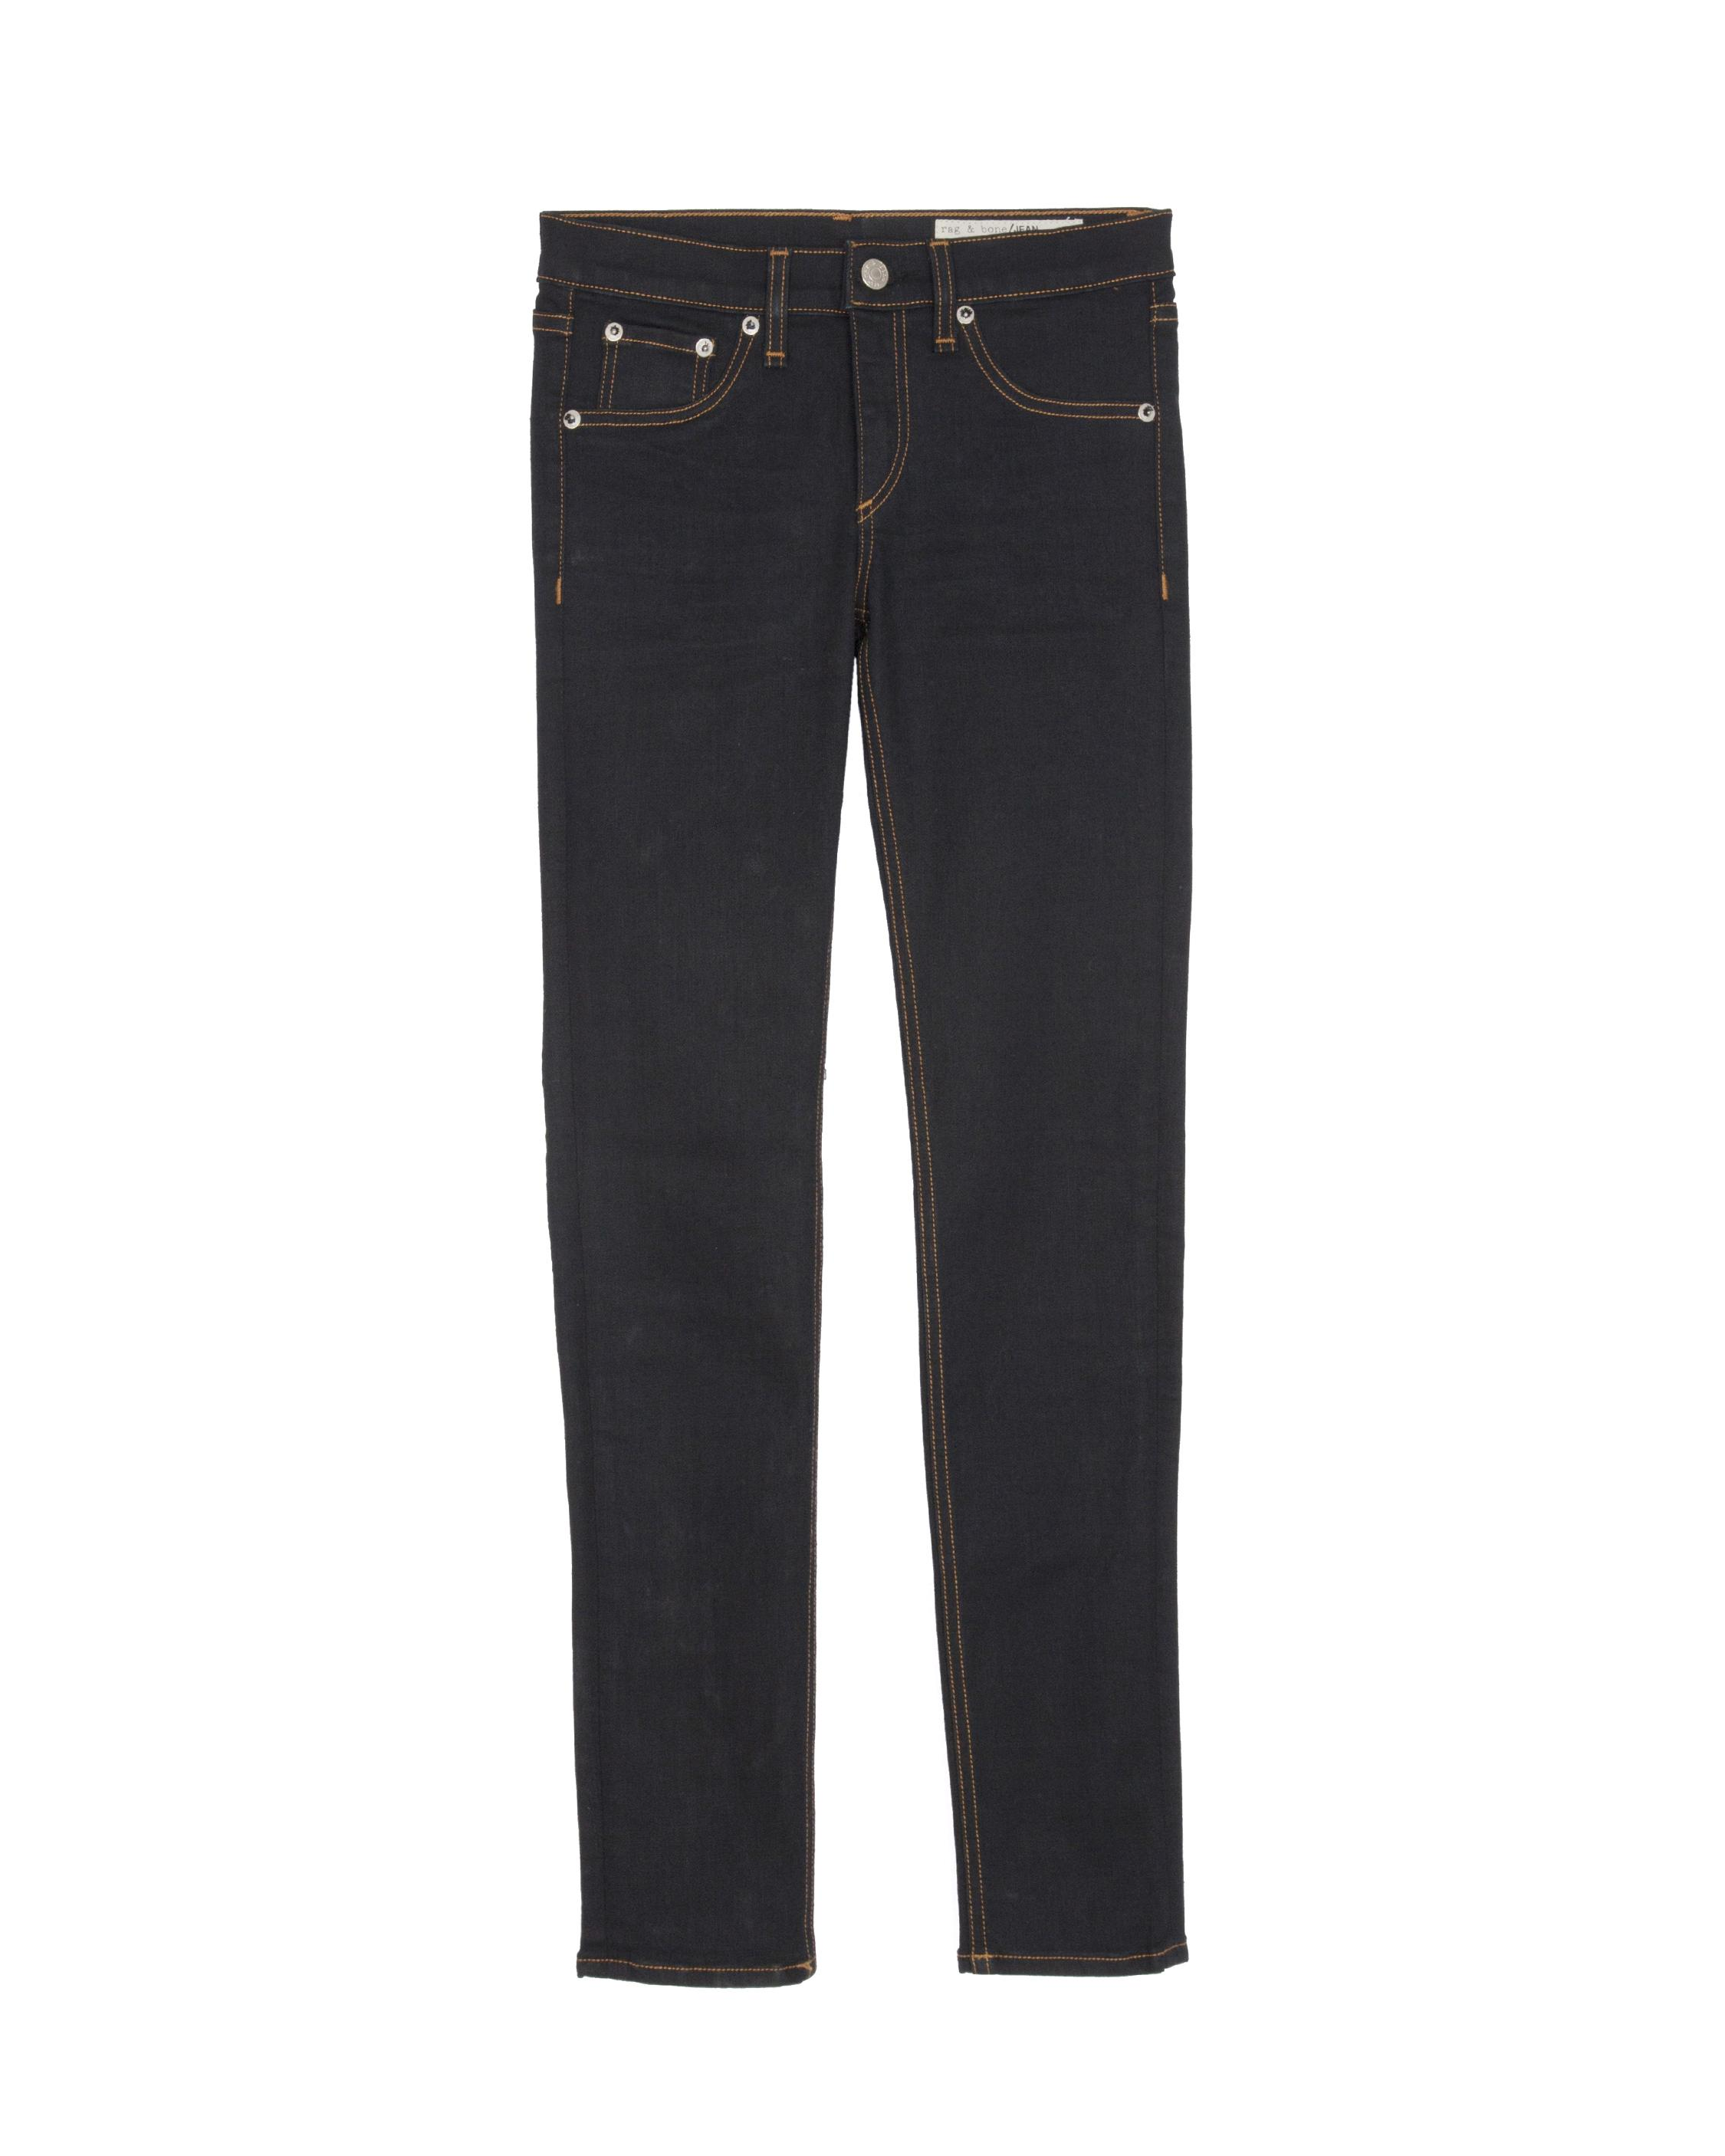 Women's Sale Jeans | rag & bone